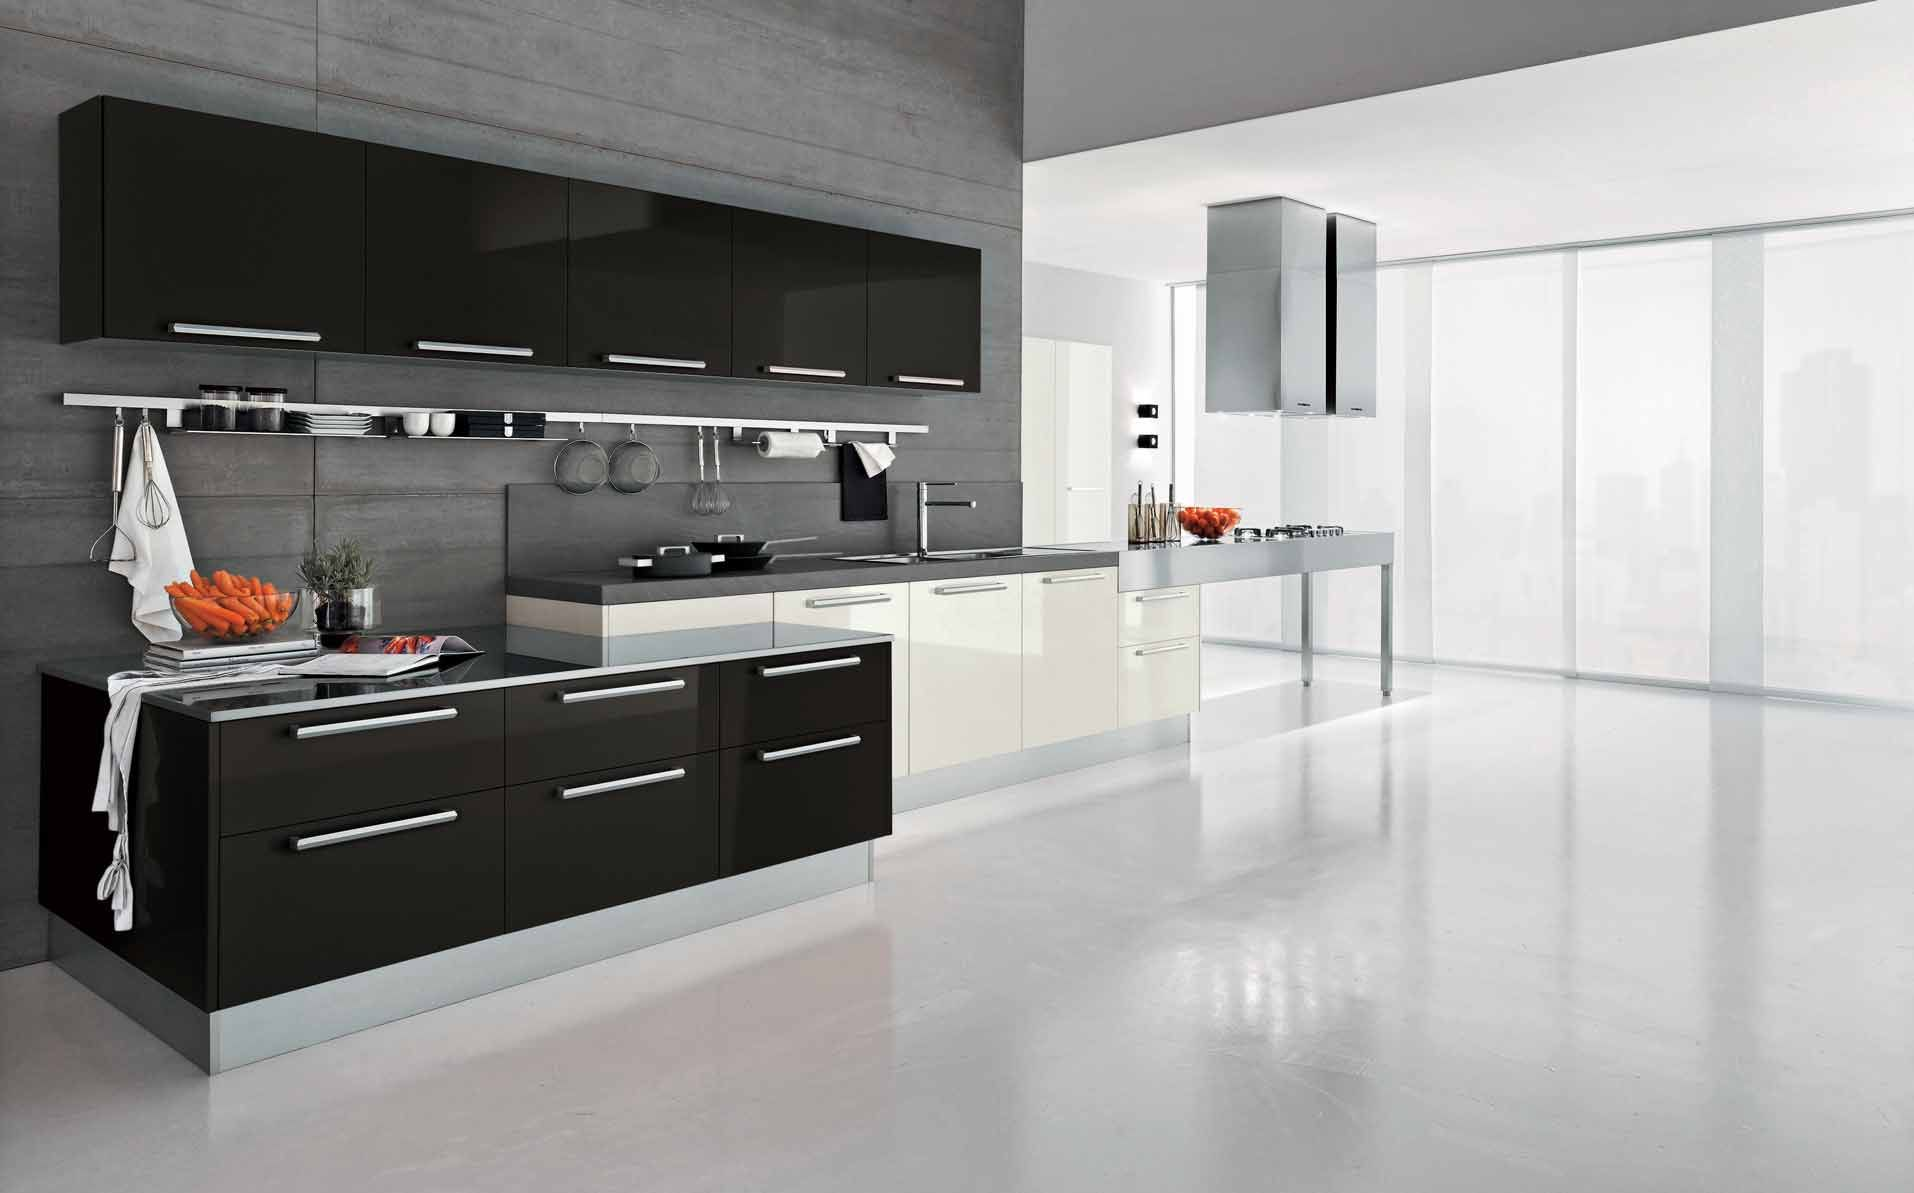 A Soothing Kitchen Design Will Work Wonders For The Way Your Home Is Presented Checkout Contemporary Kitchen Design Contemporary Kitchen Modern Kitchen Design